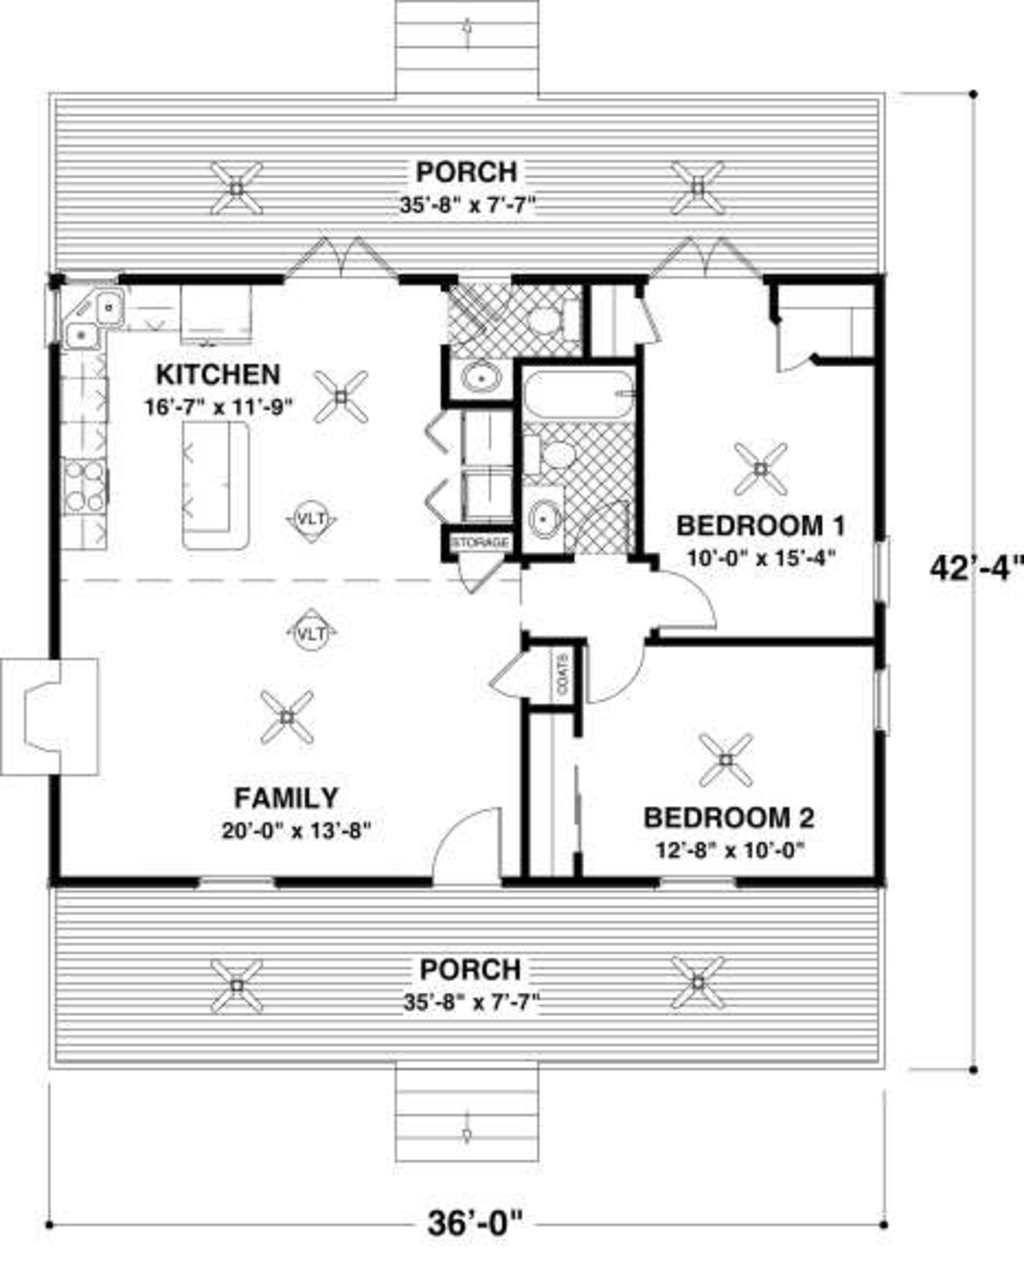 Cottage beds baths sq ft plan main floor also best downsizing images on pinterest future house my and rh